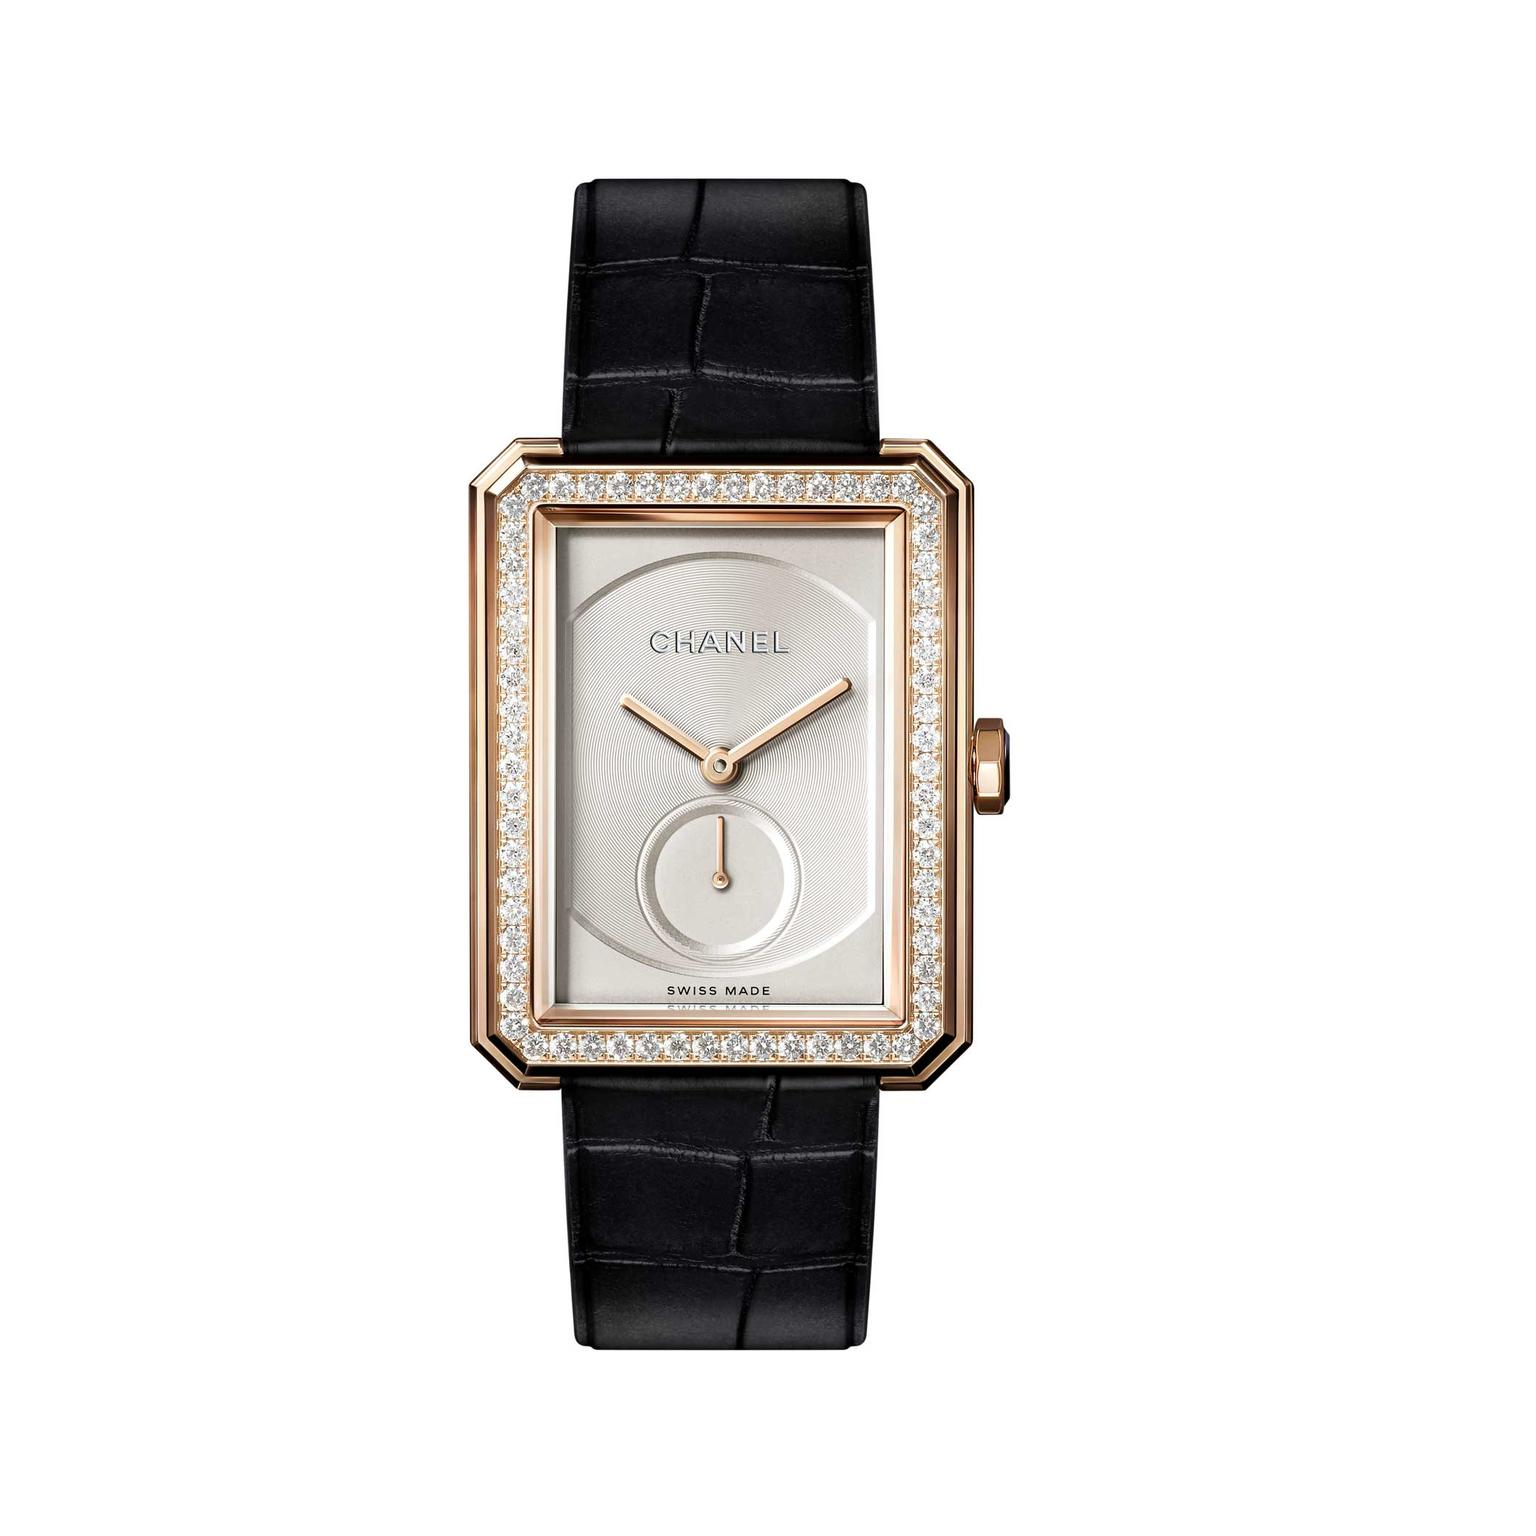 Chanel Boyfriend beige gold mechanical watch with diamonds